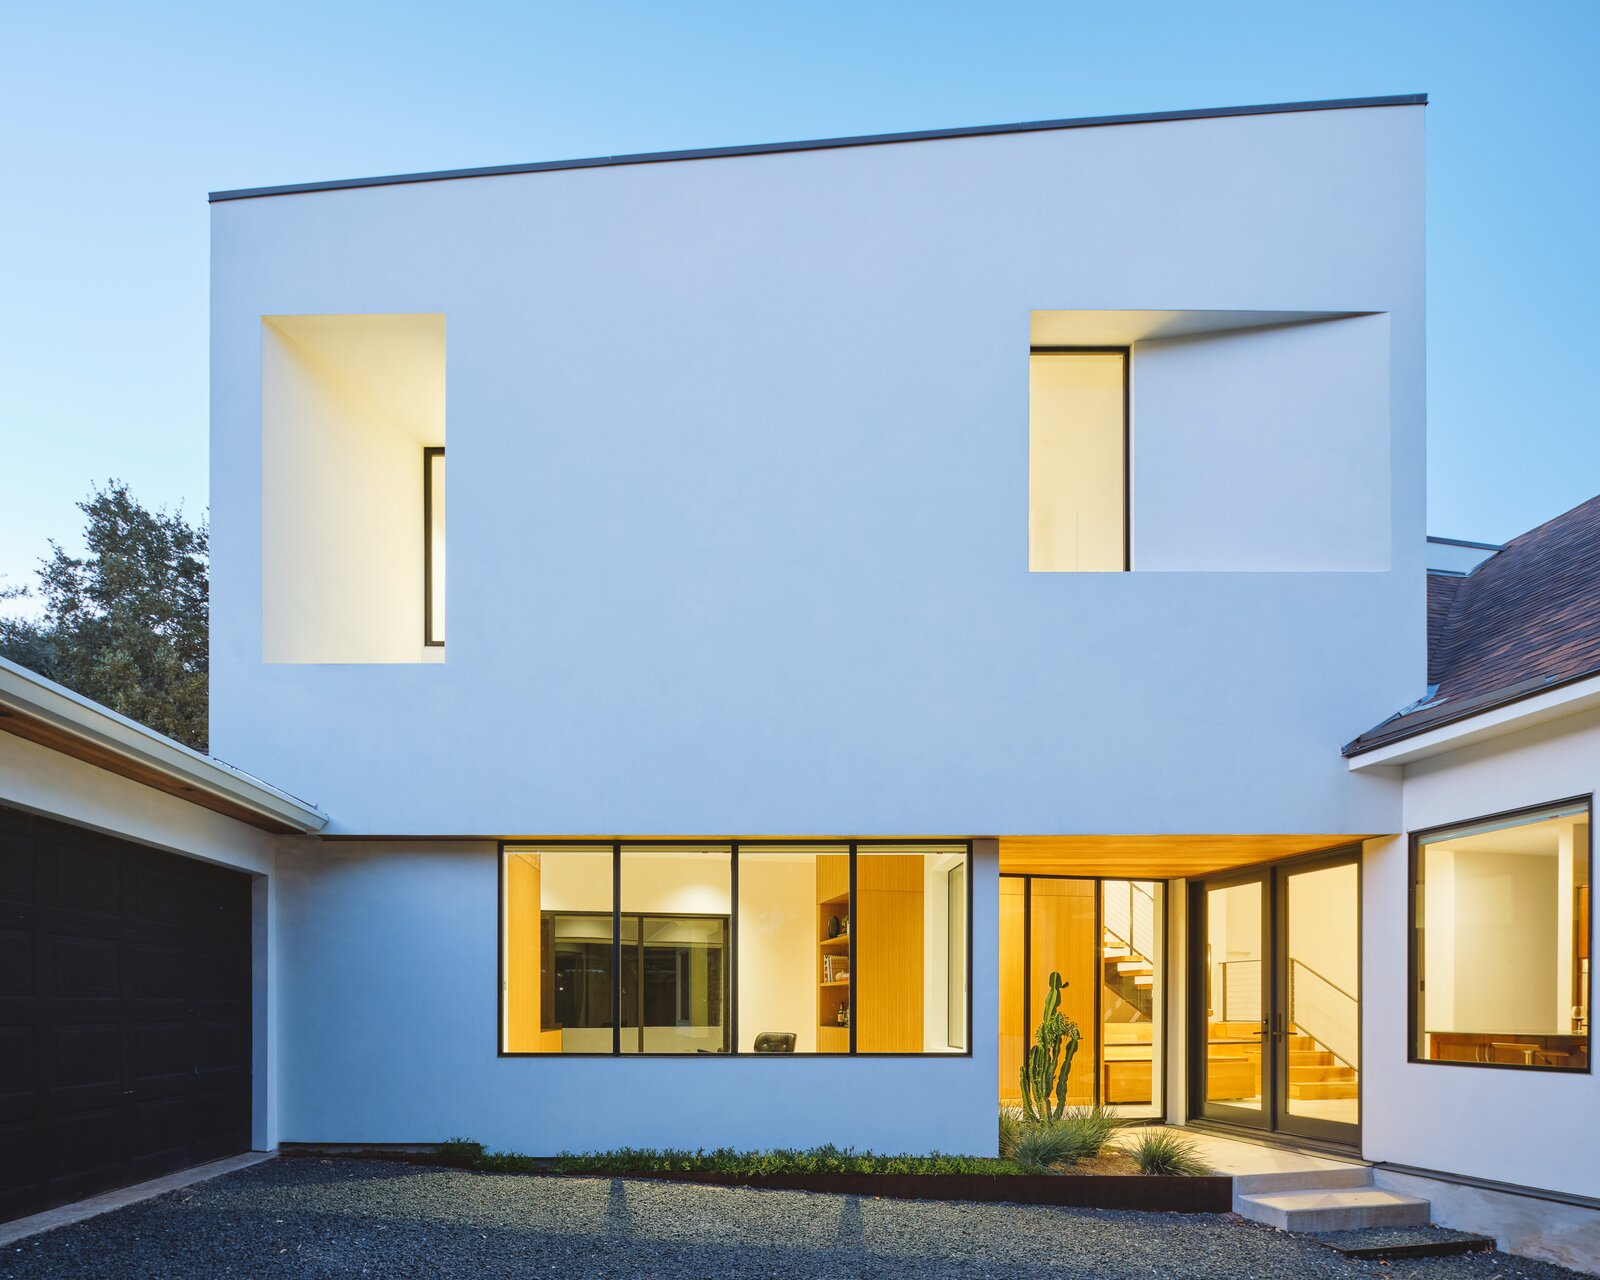 Photo 1 of 9 in This Striking Addition in Austin Is Defined by Clean, Discrete Geometry